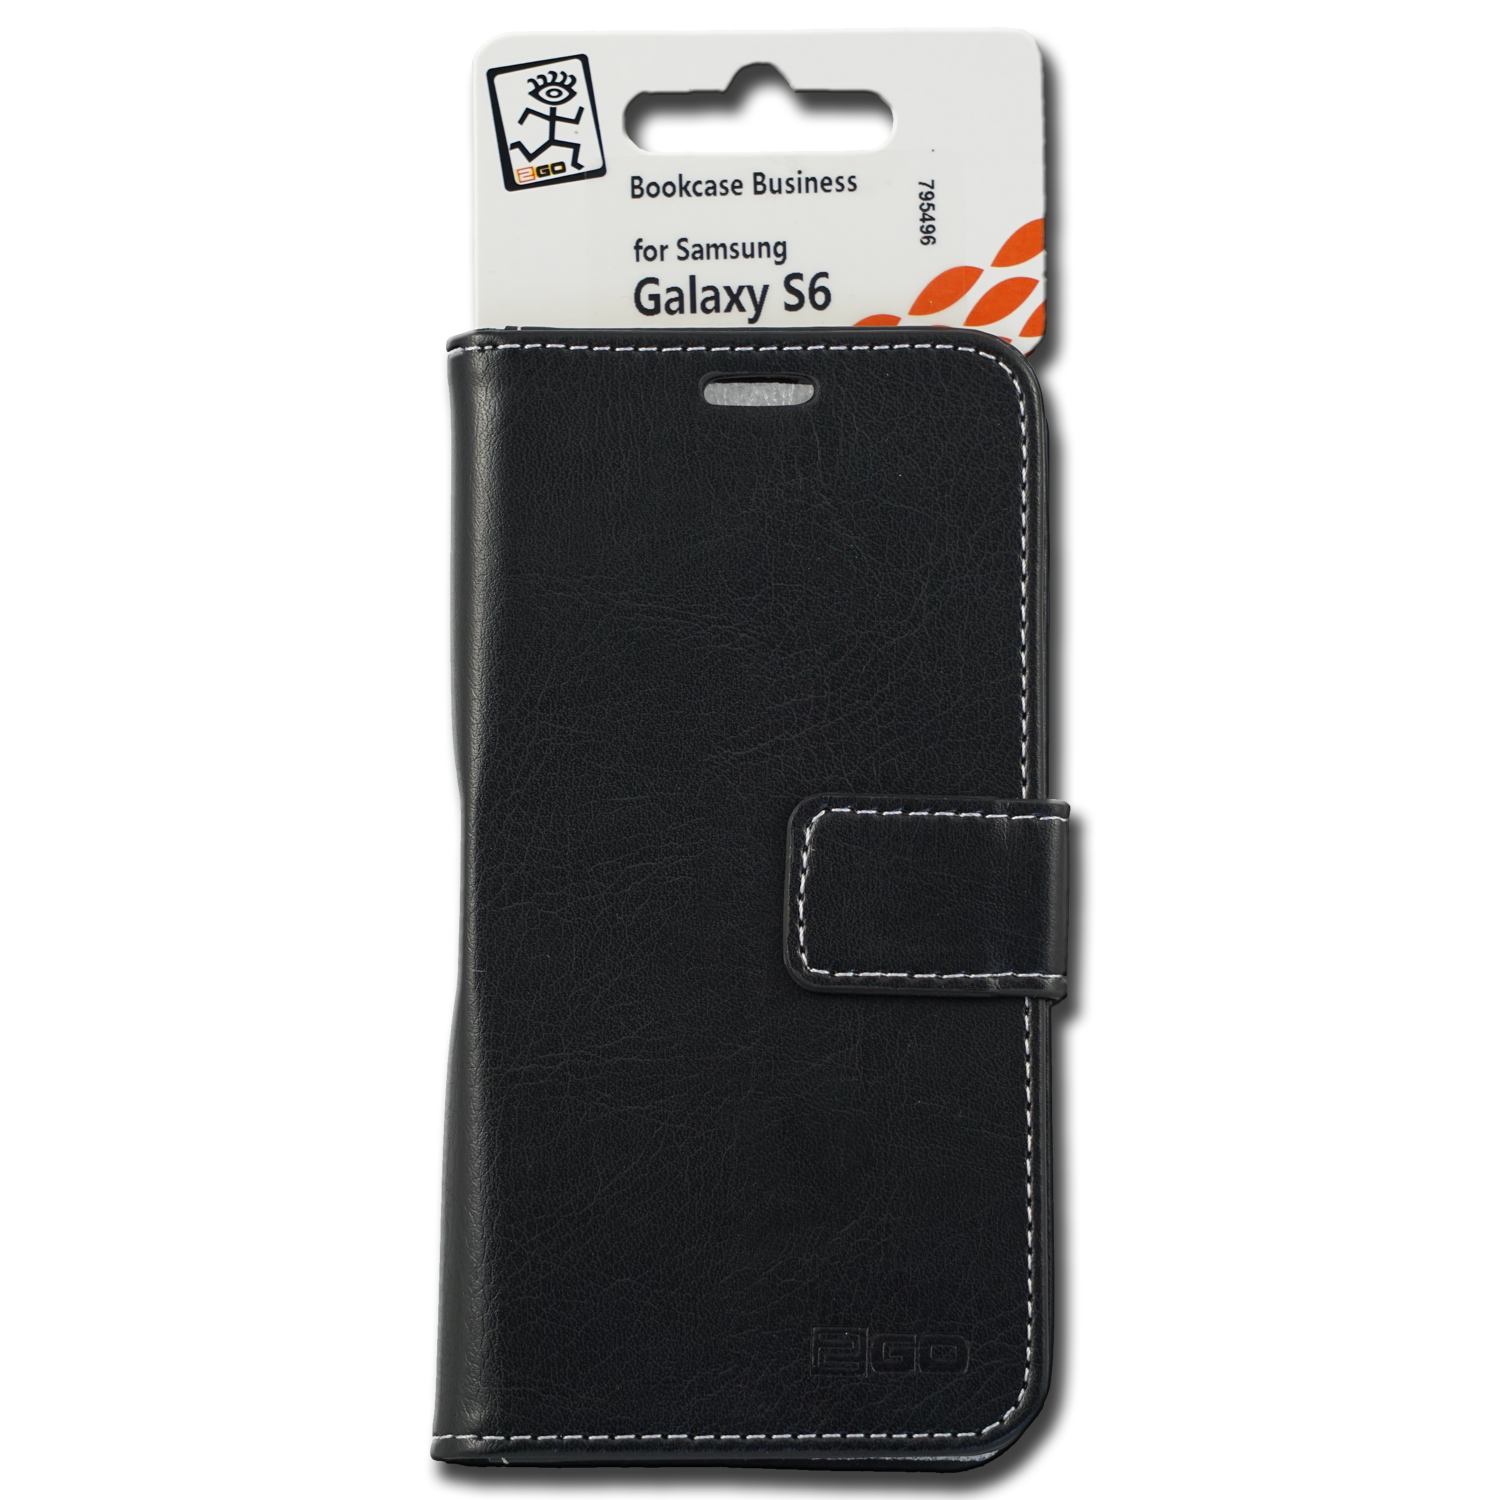 2GO Book-Case Business für Samsung Galaxy S6 Leder – Bild 1